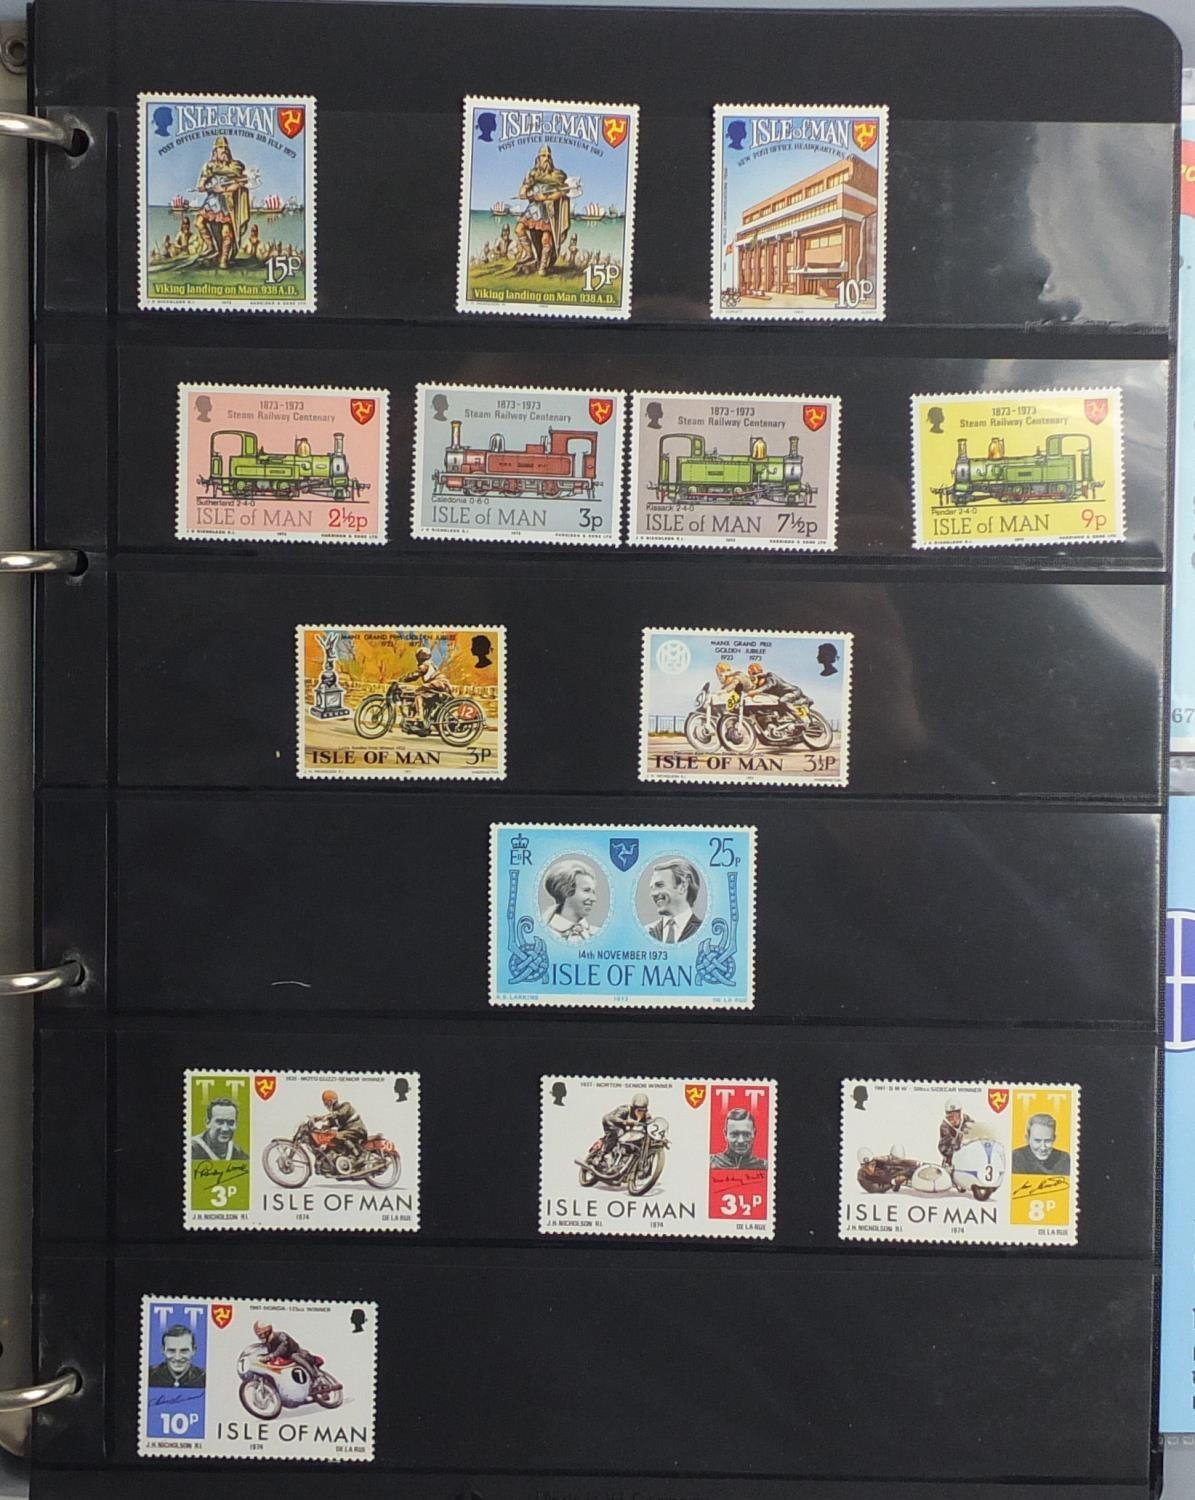 Lot 1042 - Isle of Man stamps mostly unmounted mint including mini sheets, strips and blocks, arranged in an